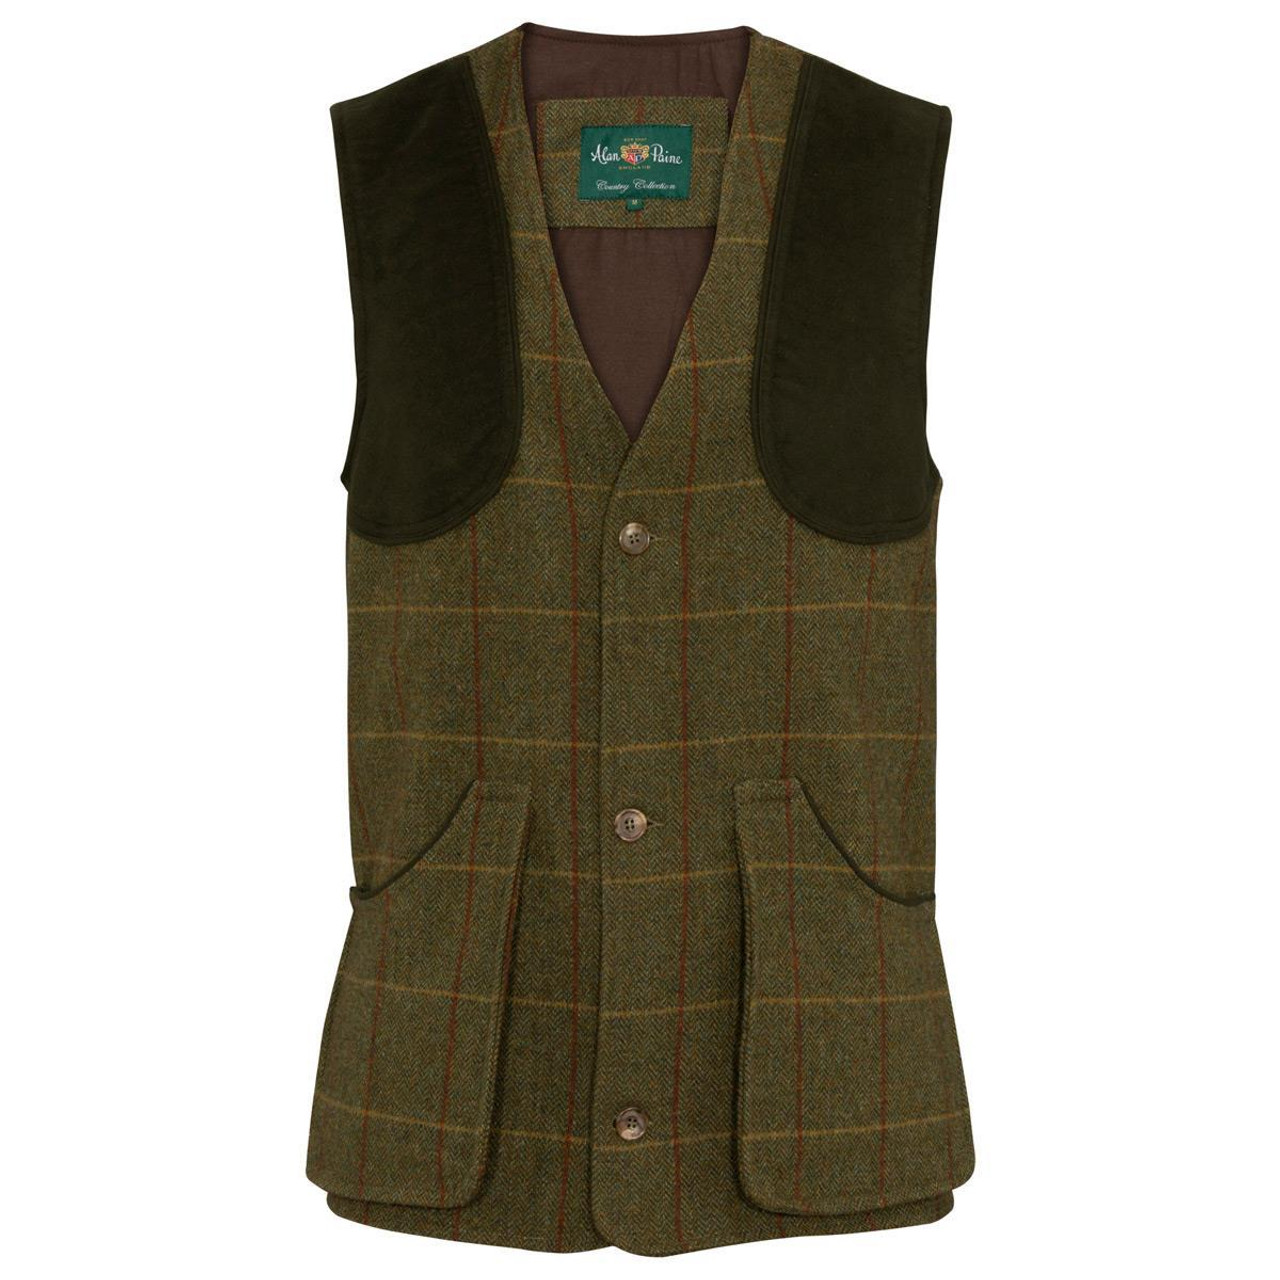 Oak Alan Paine Mens Rutland Shooting Waistcoat